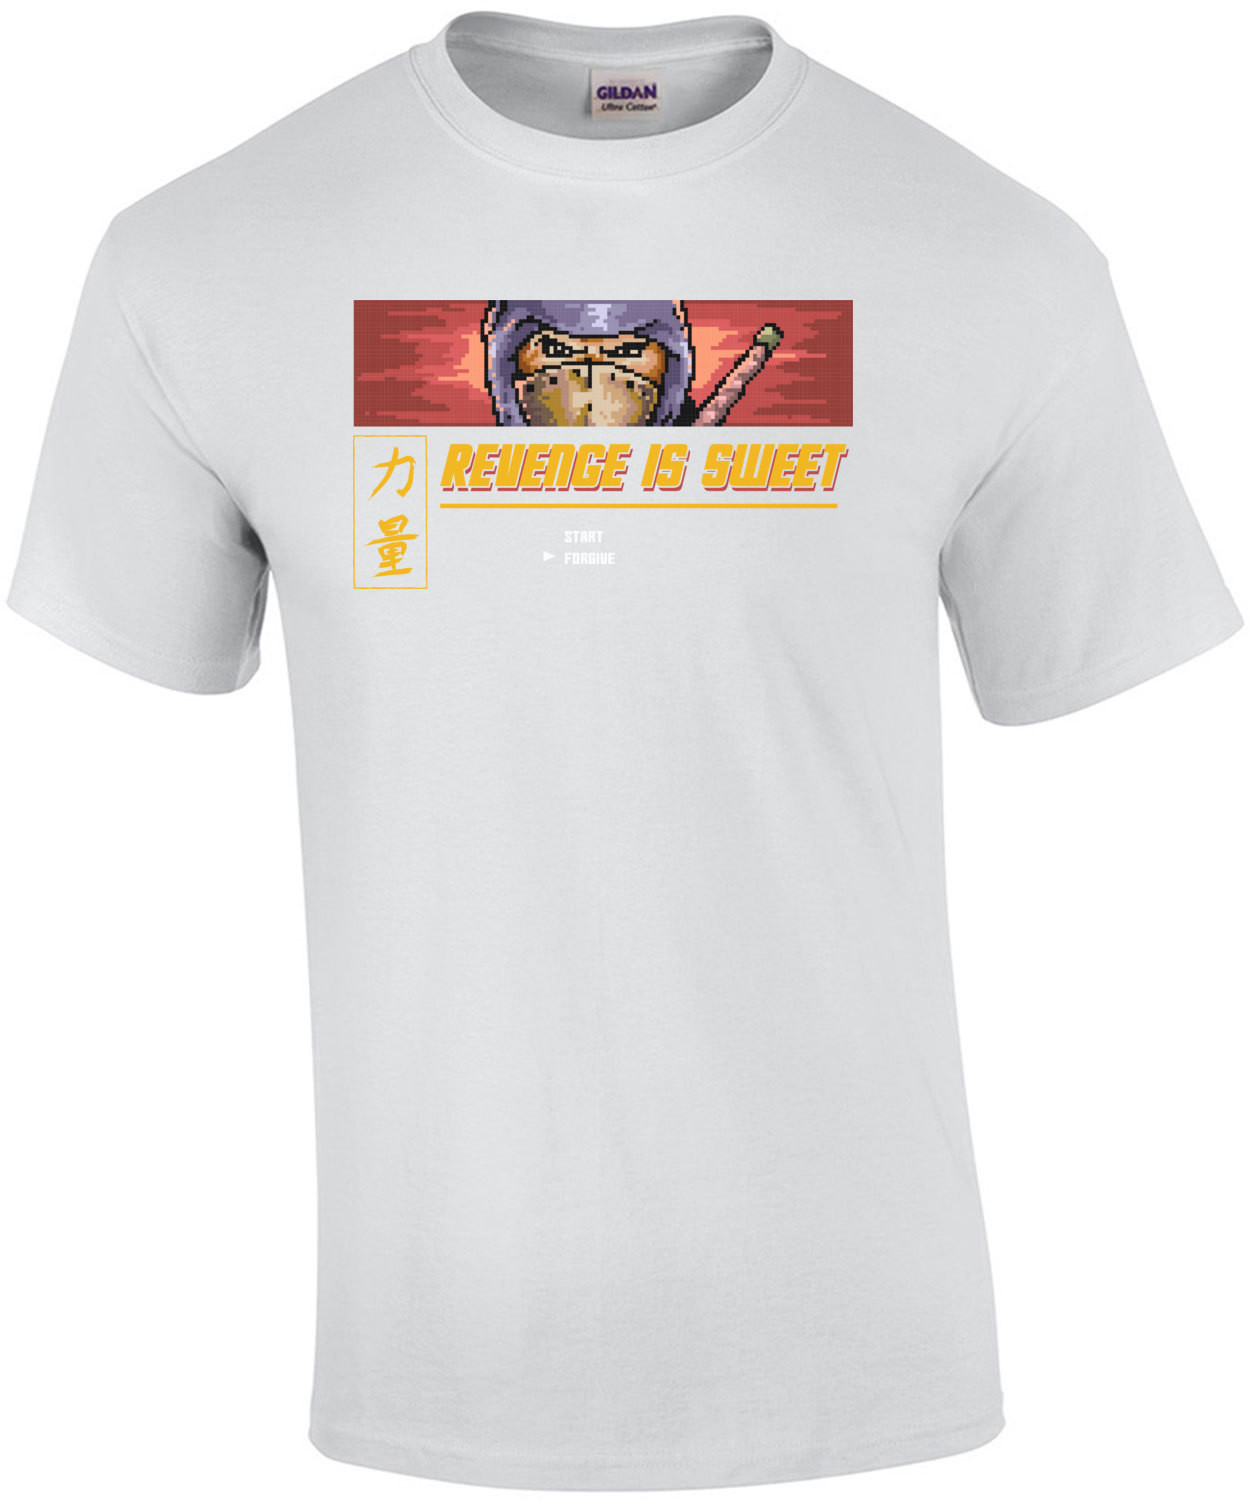 Revenge Is Sweet Retro Ninja Gaiden Gaming T-Shirt